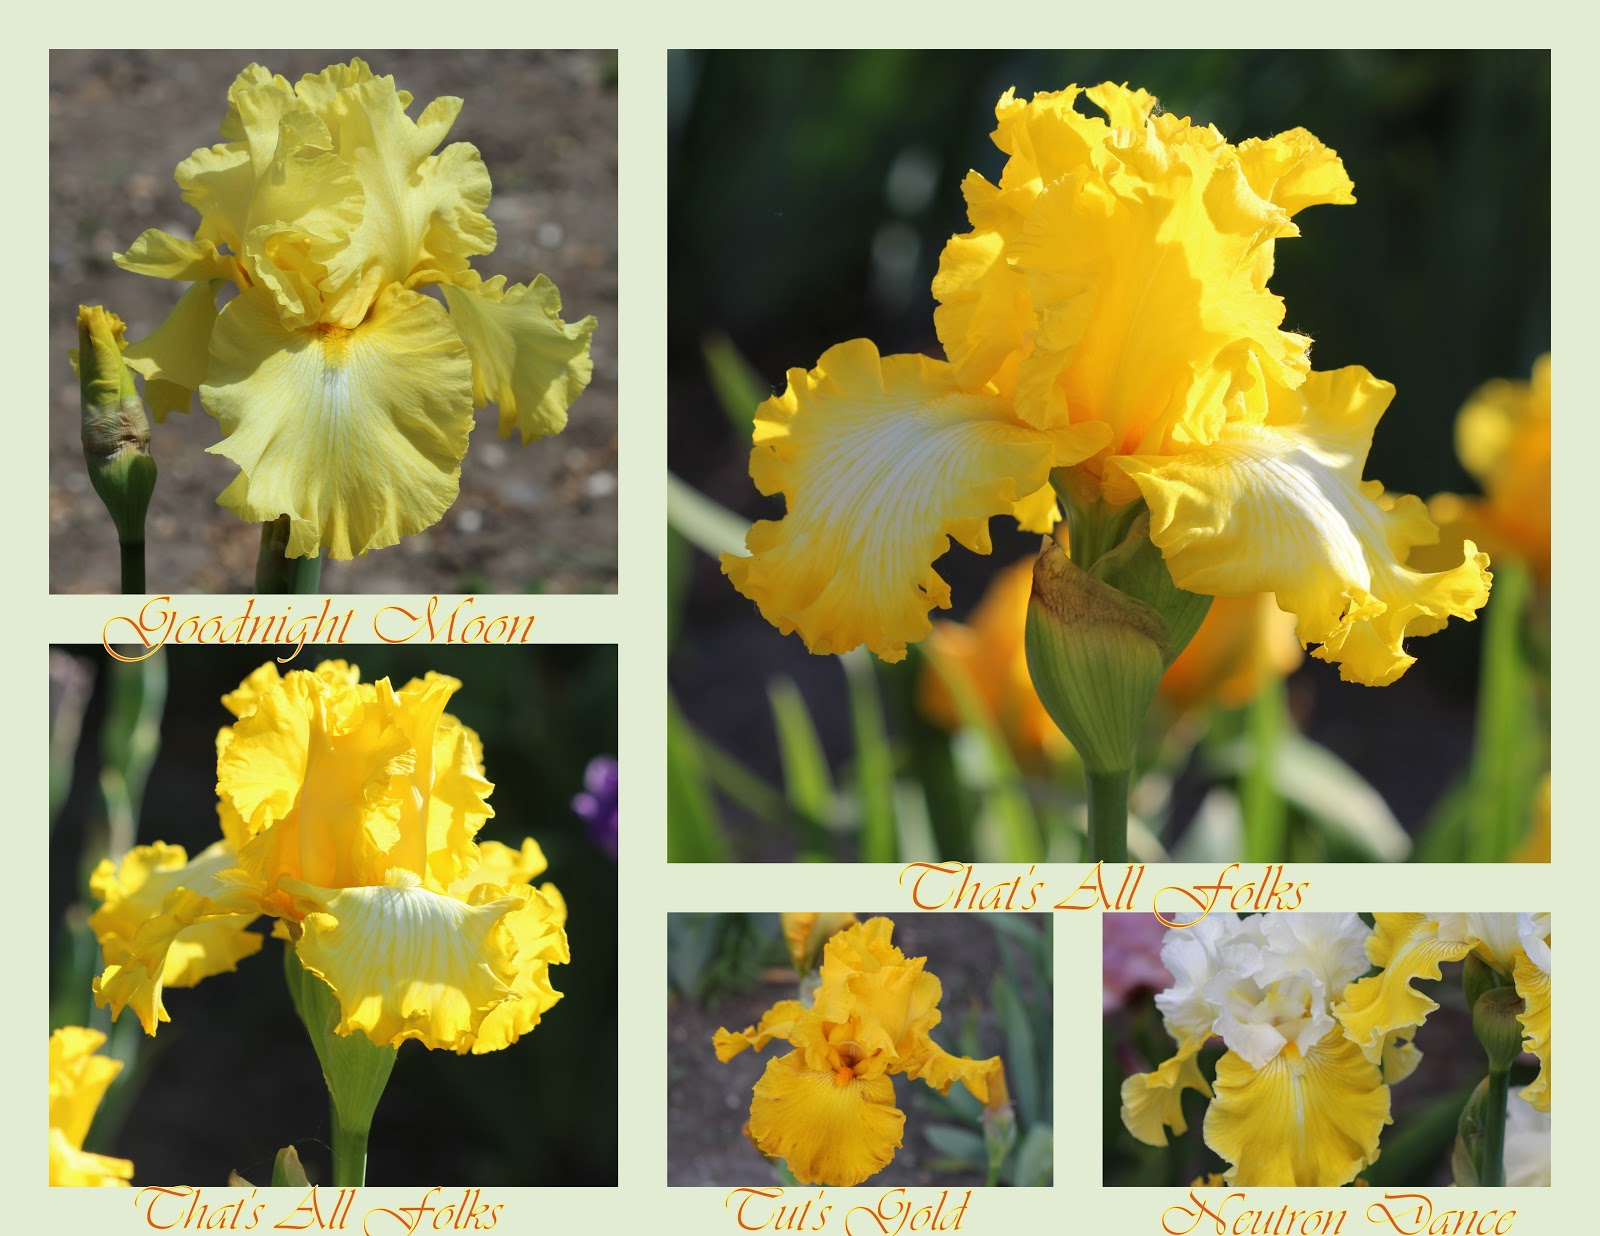 World of irises more photomontages of tall bearded irises these irises bloomed on may 17 th 2016 the colors are rich and dramatic as is in most cases the full lush beards are a nice finishing touch on each of izmirmasajfo Image collections